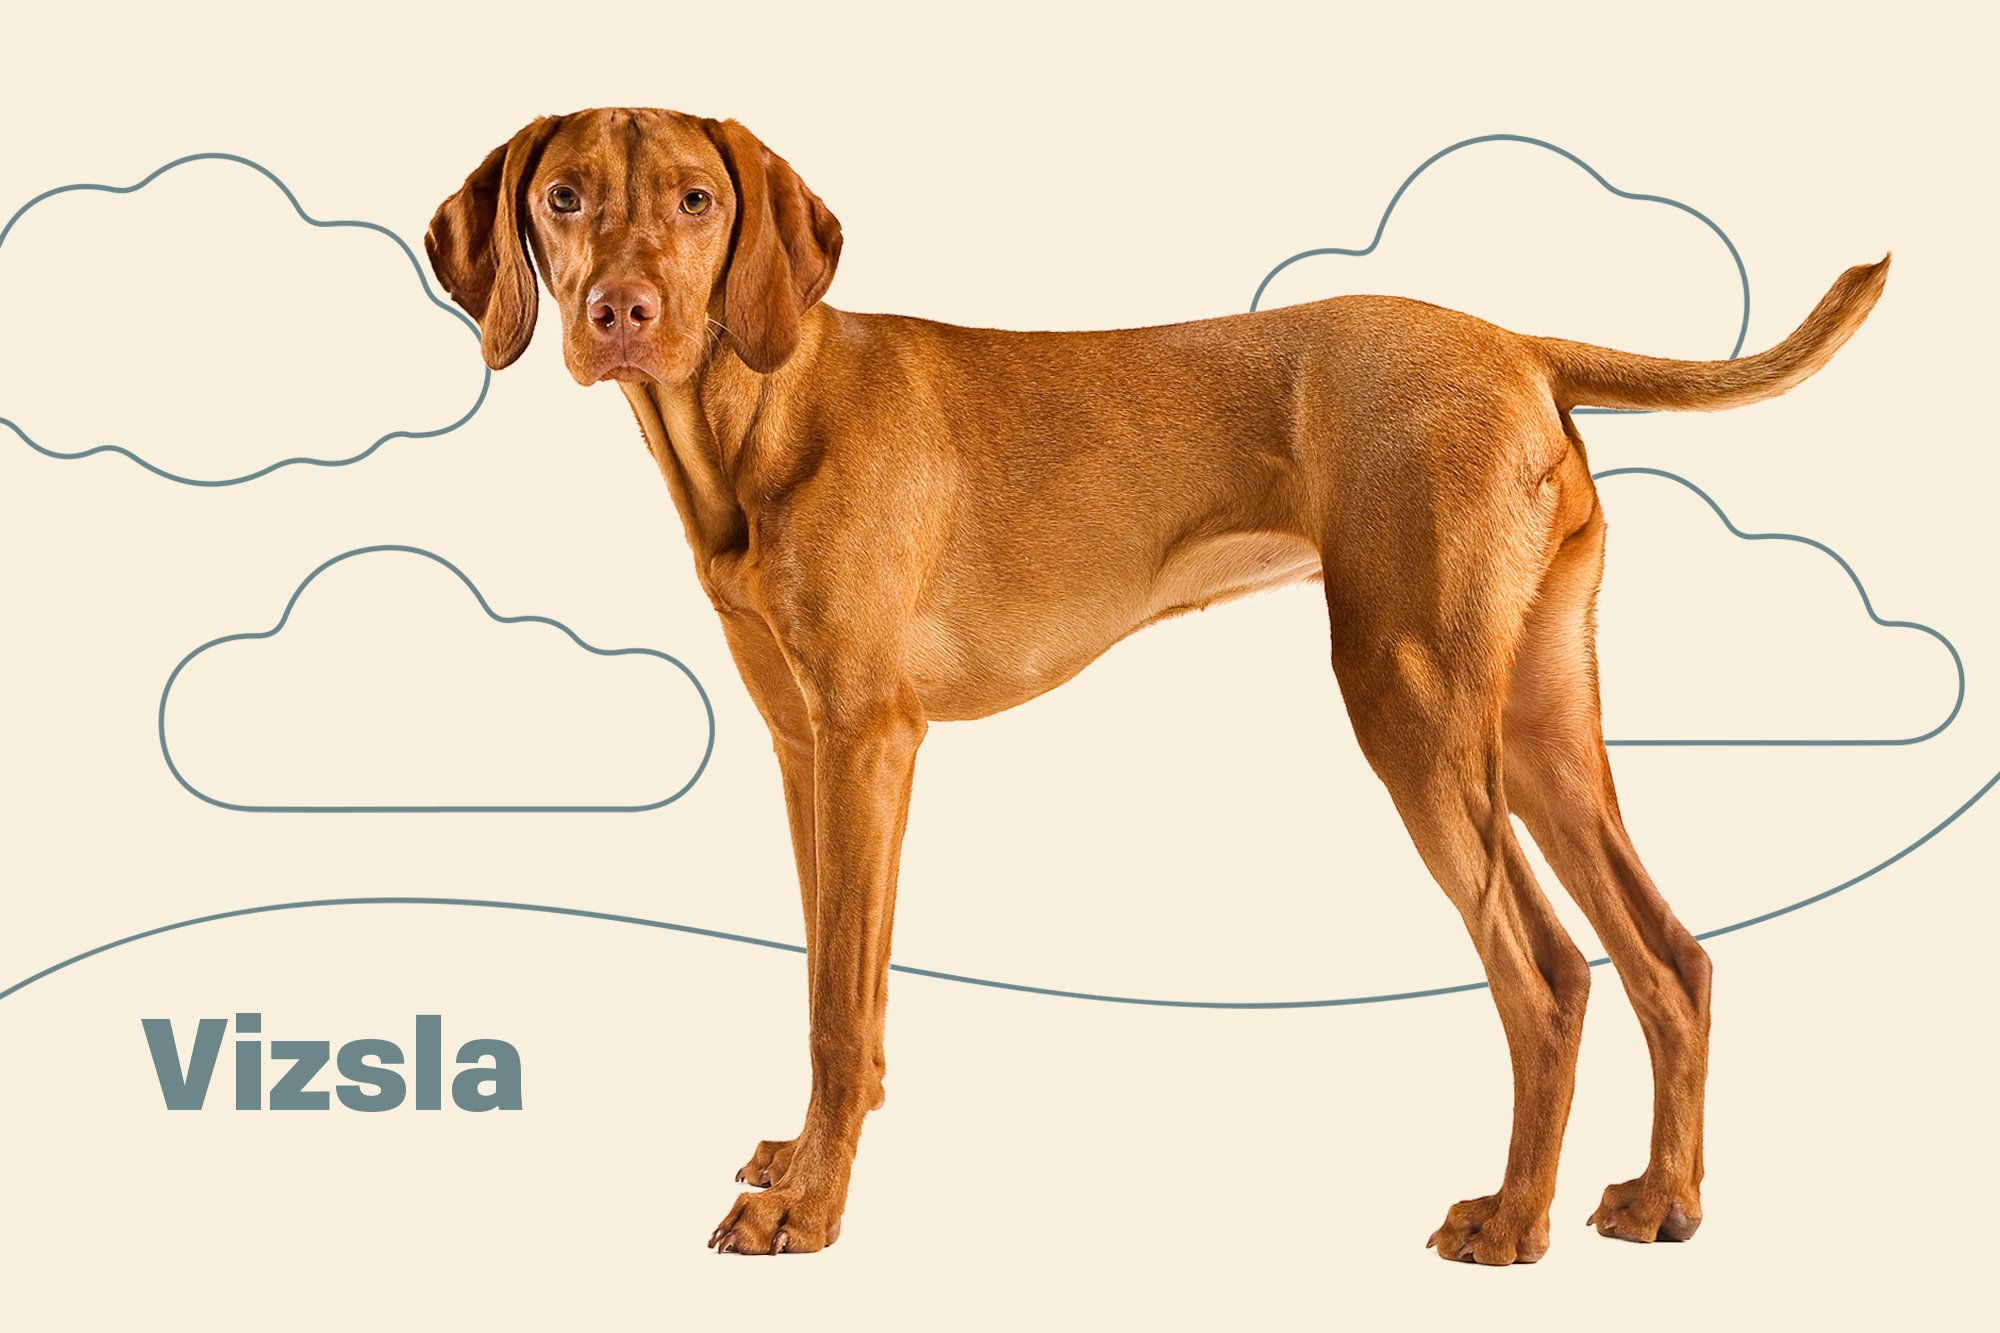 Vizsla Breed Photo